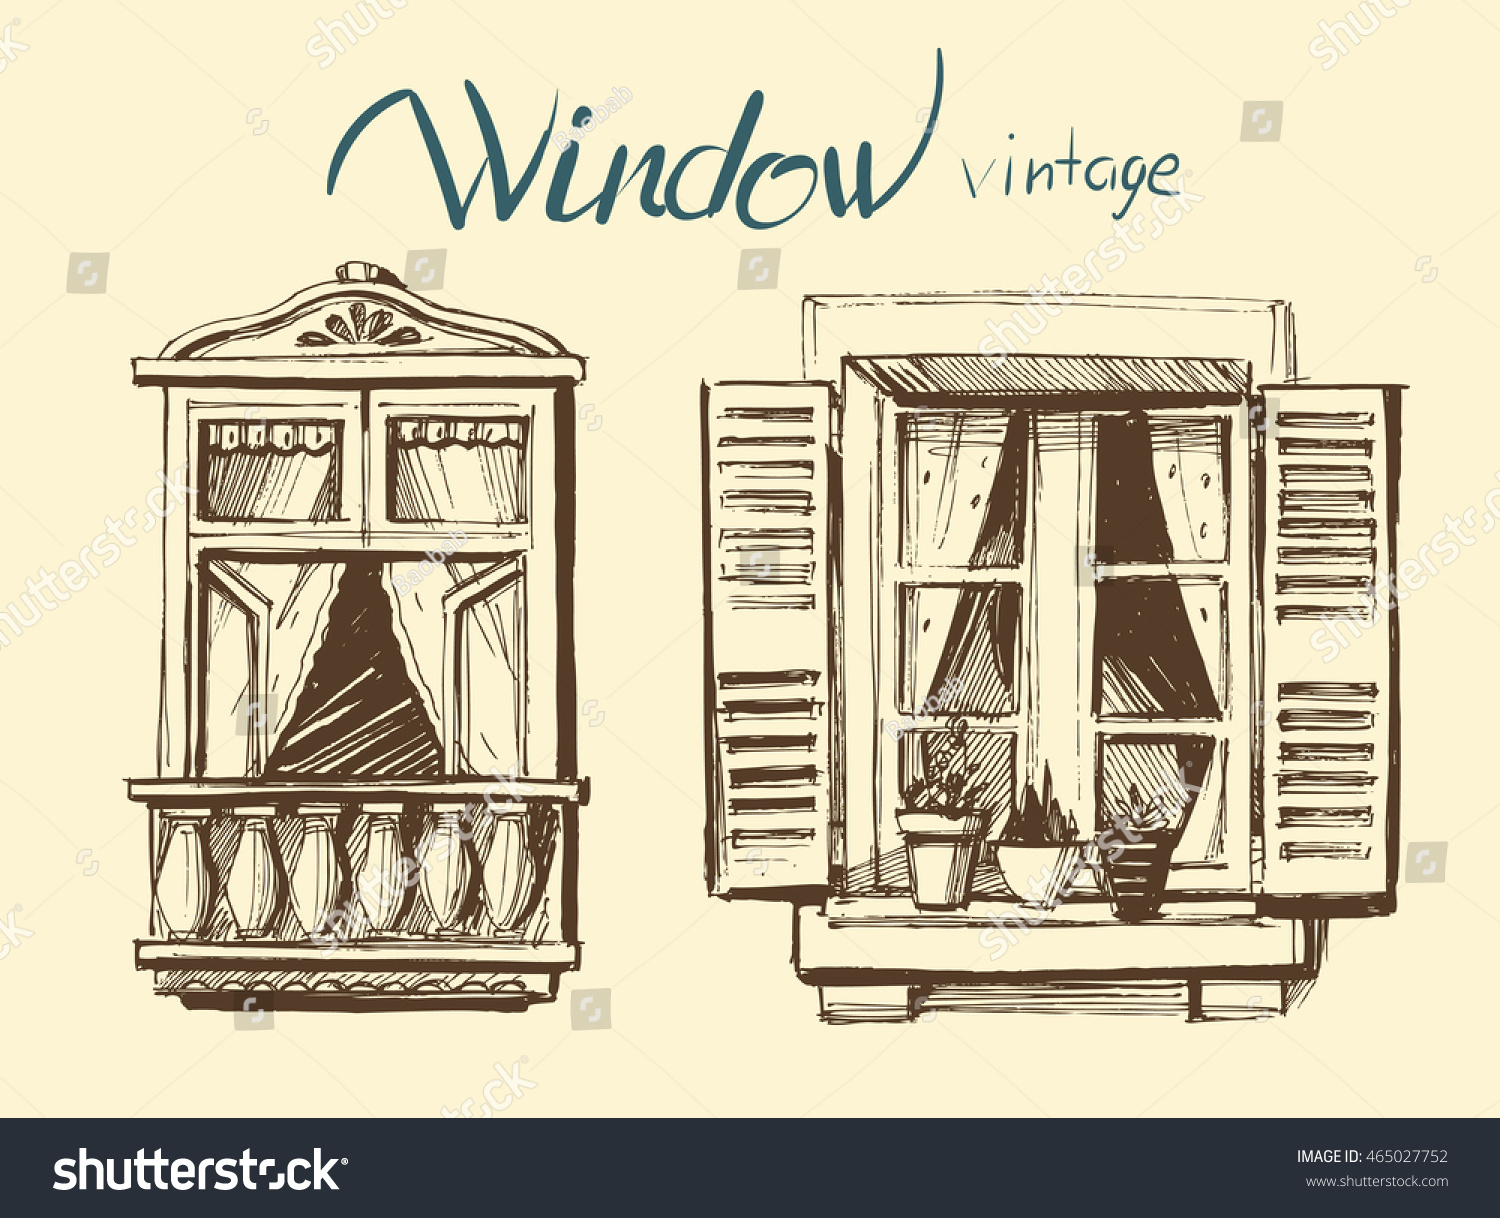 vintage window drawing. vintage window. vector sketch window drawing y